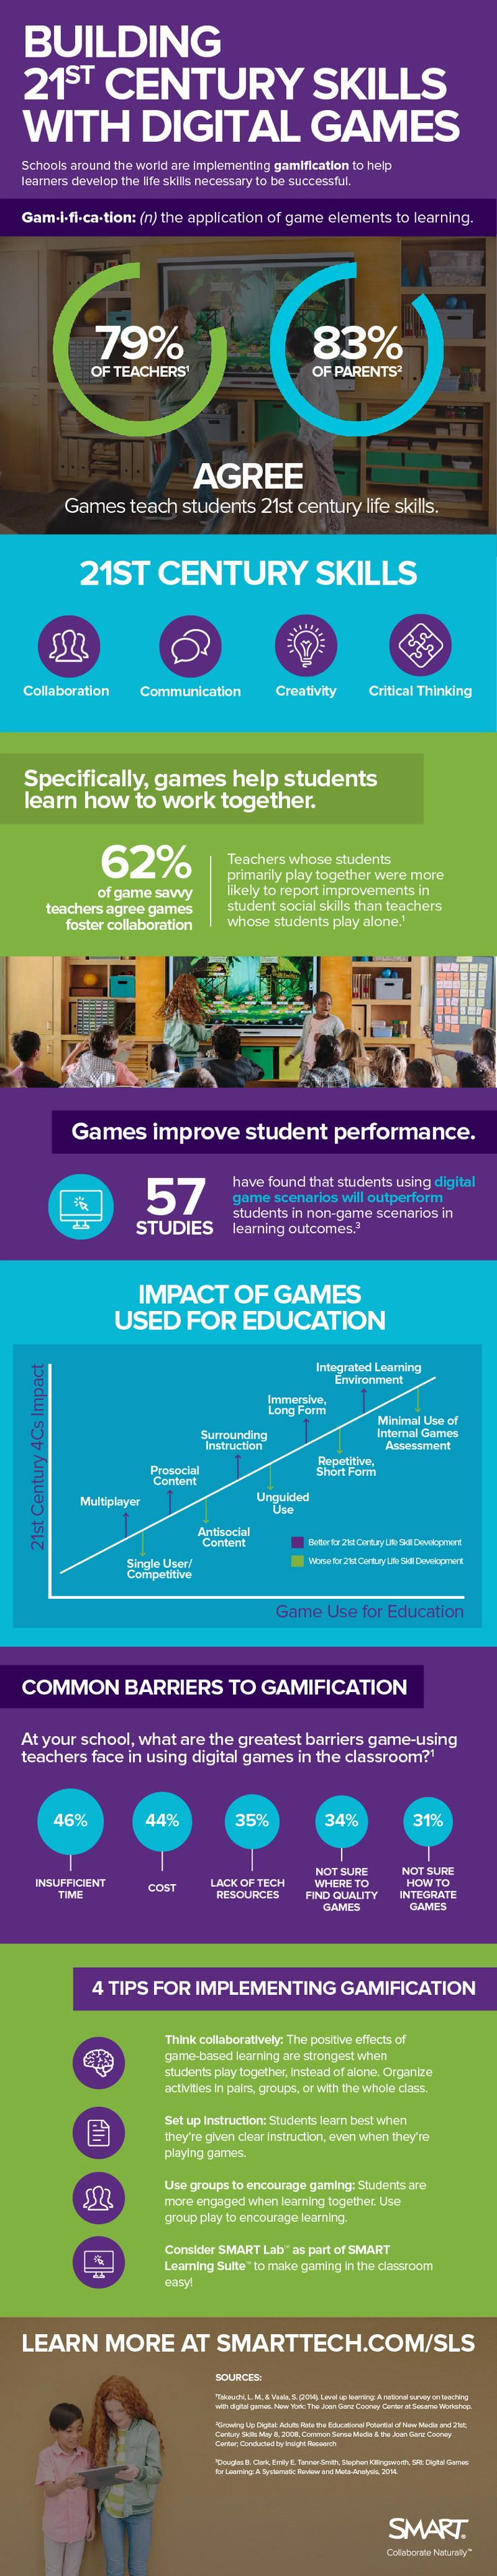 Building 21st Century Skills with Digital Games Infographic - http://elearninginfographics.com/21st-century-skills-digital-games-infographic/